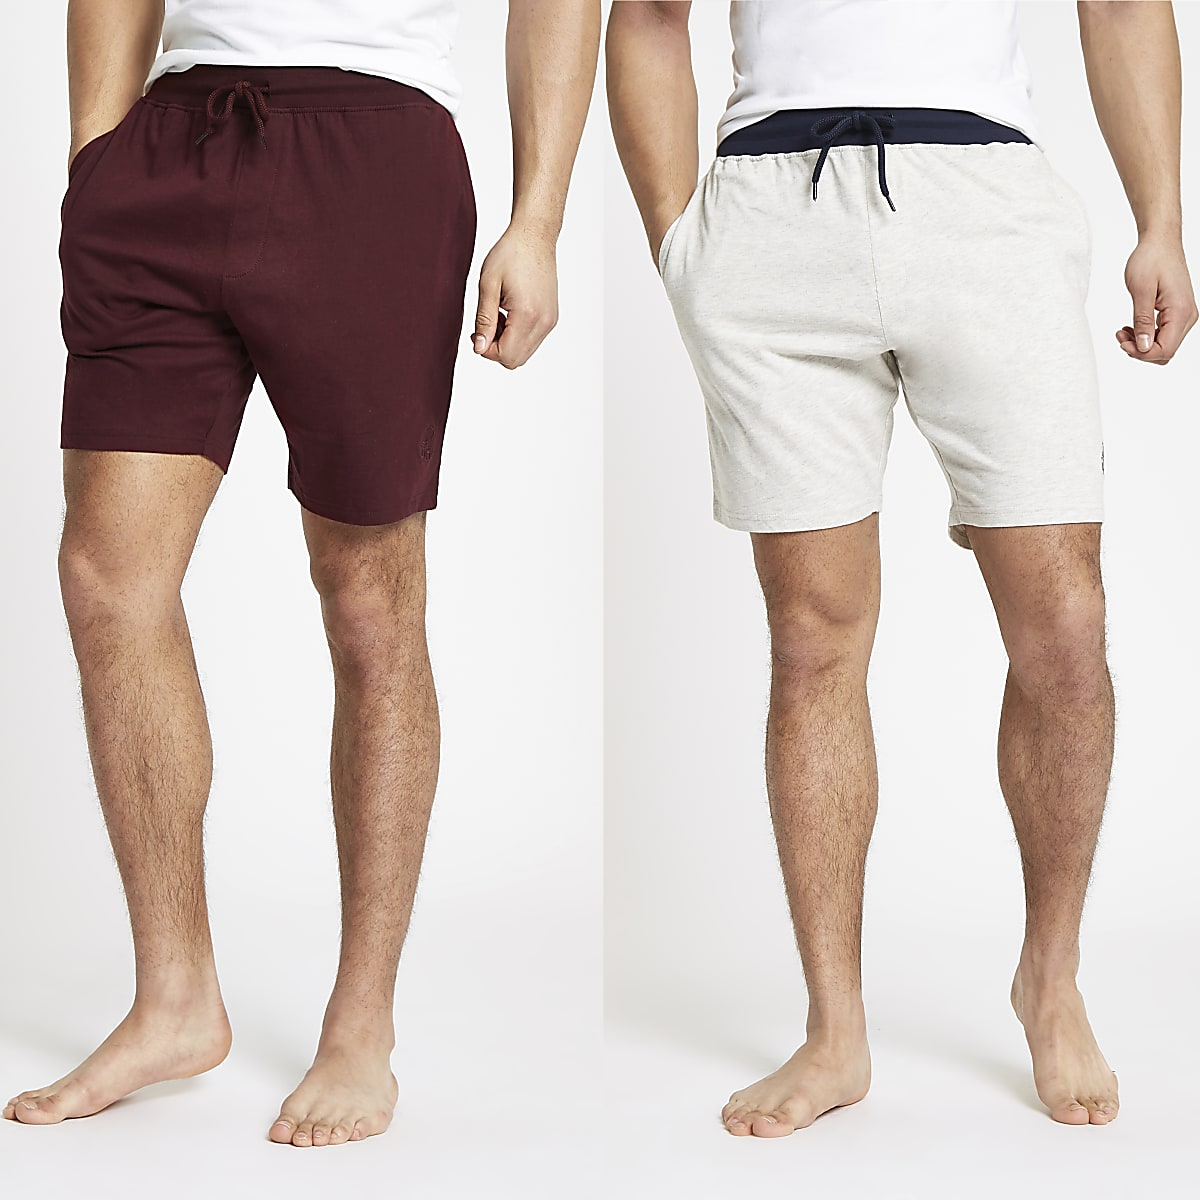 R96 red and grey shorts 2 pack